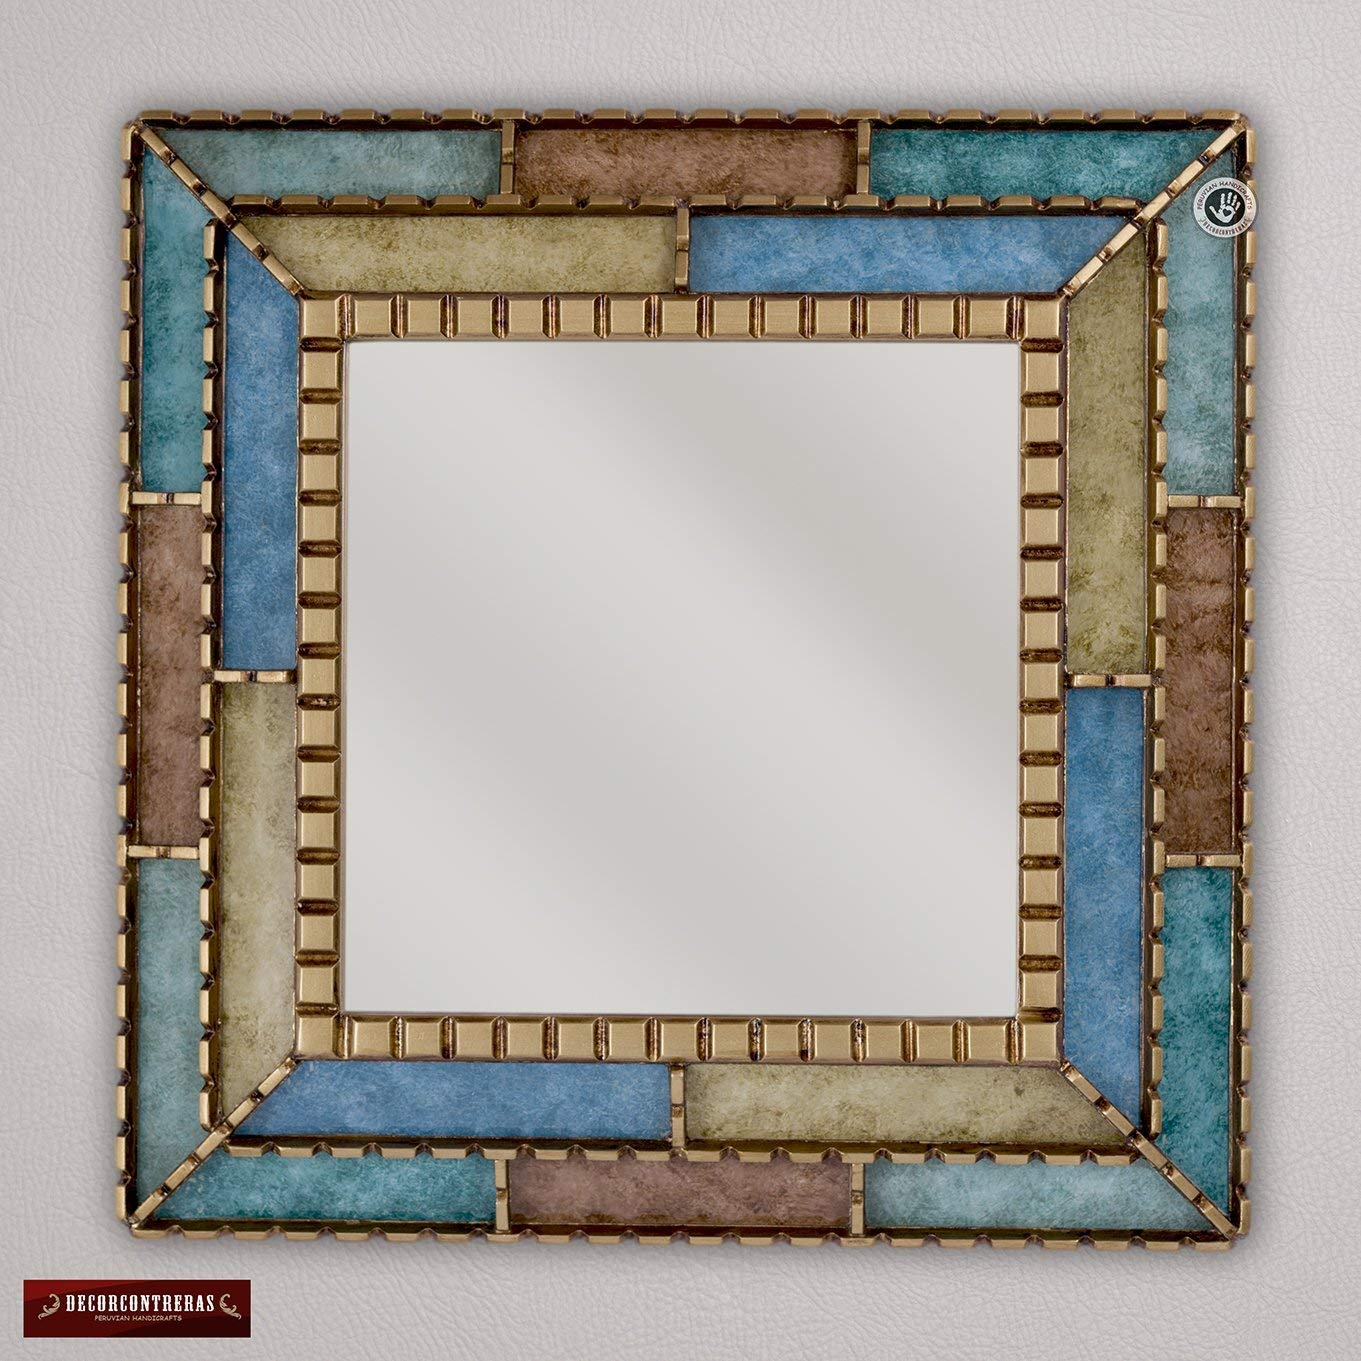 """Handmade Decorative Mirror 18.1"""" from Peru, Bathroom Mirror for wall decor, Turquoise Ornate Mirror, Painted glass with golden wood framed"""